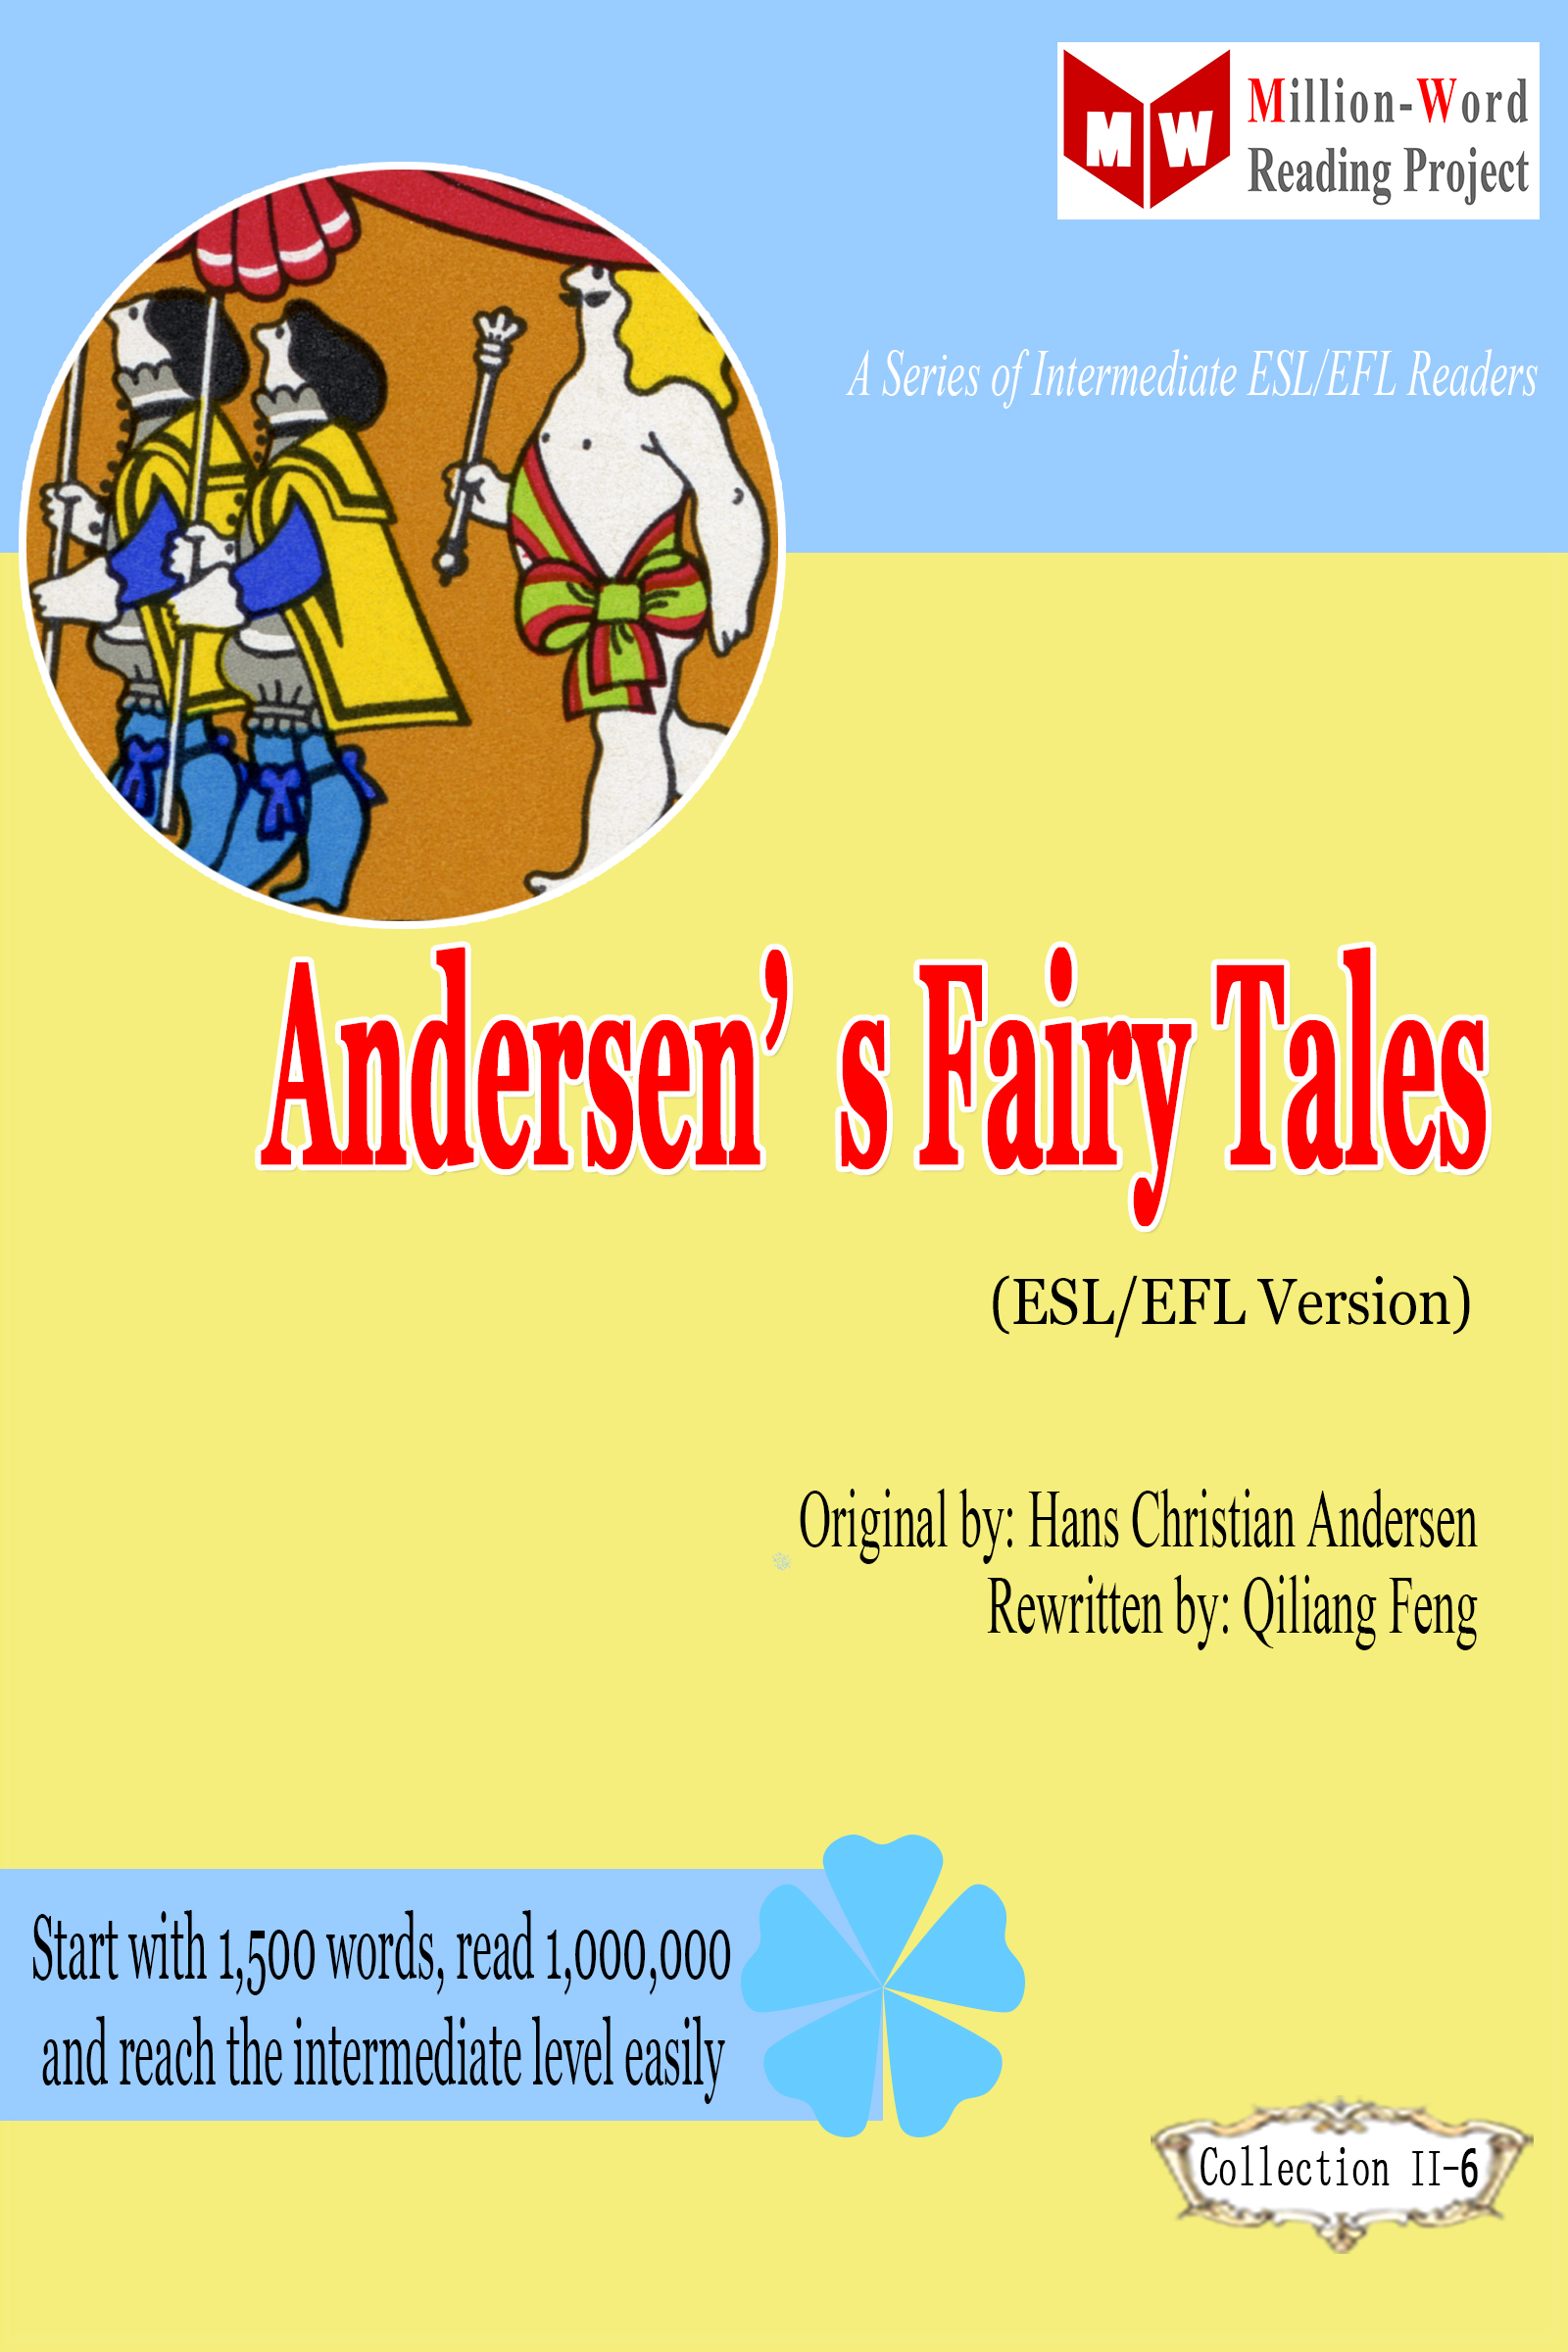 Andersen's Fairy Tales (ESL/EFL Version) [electronic resource]